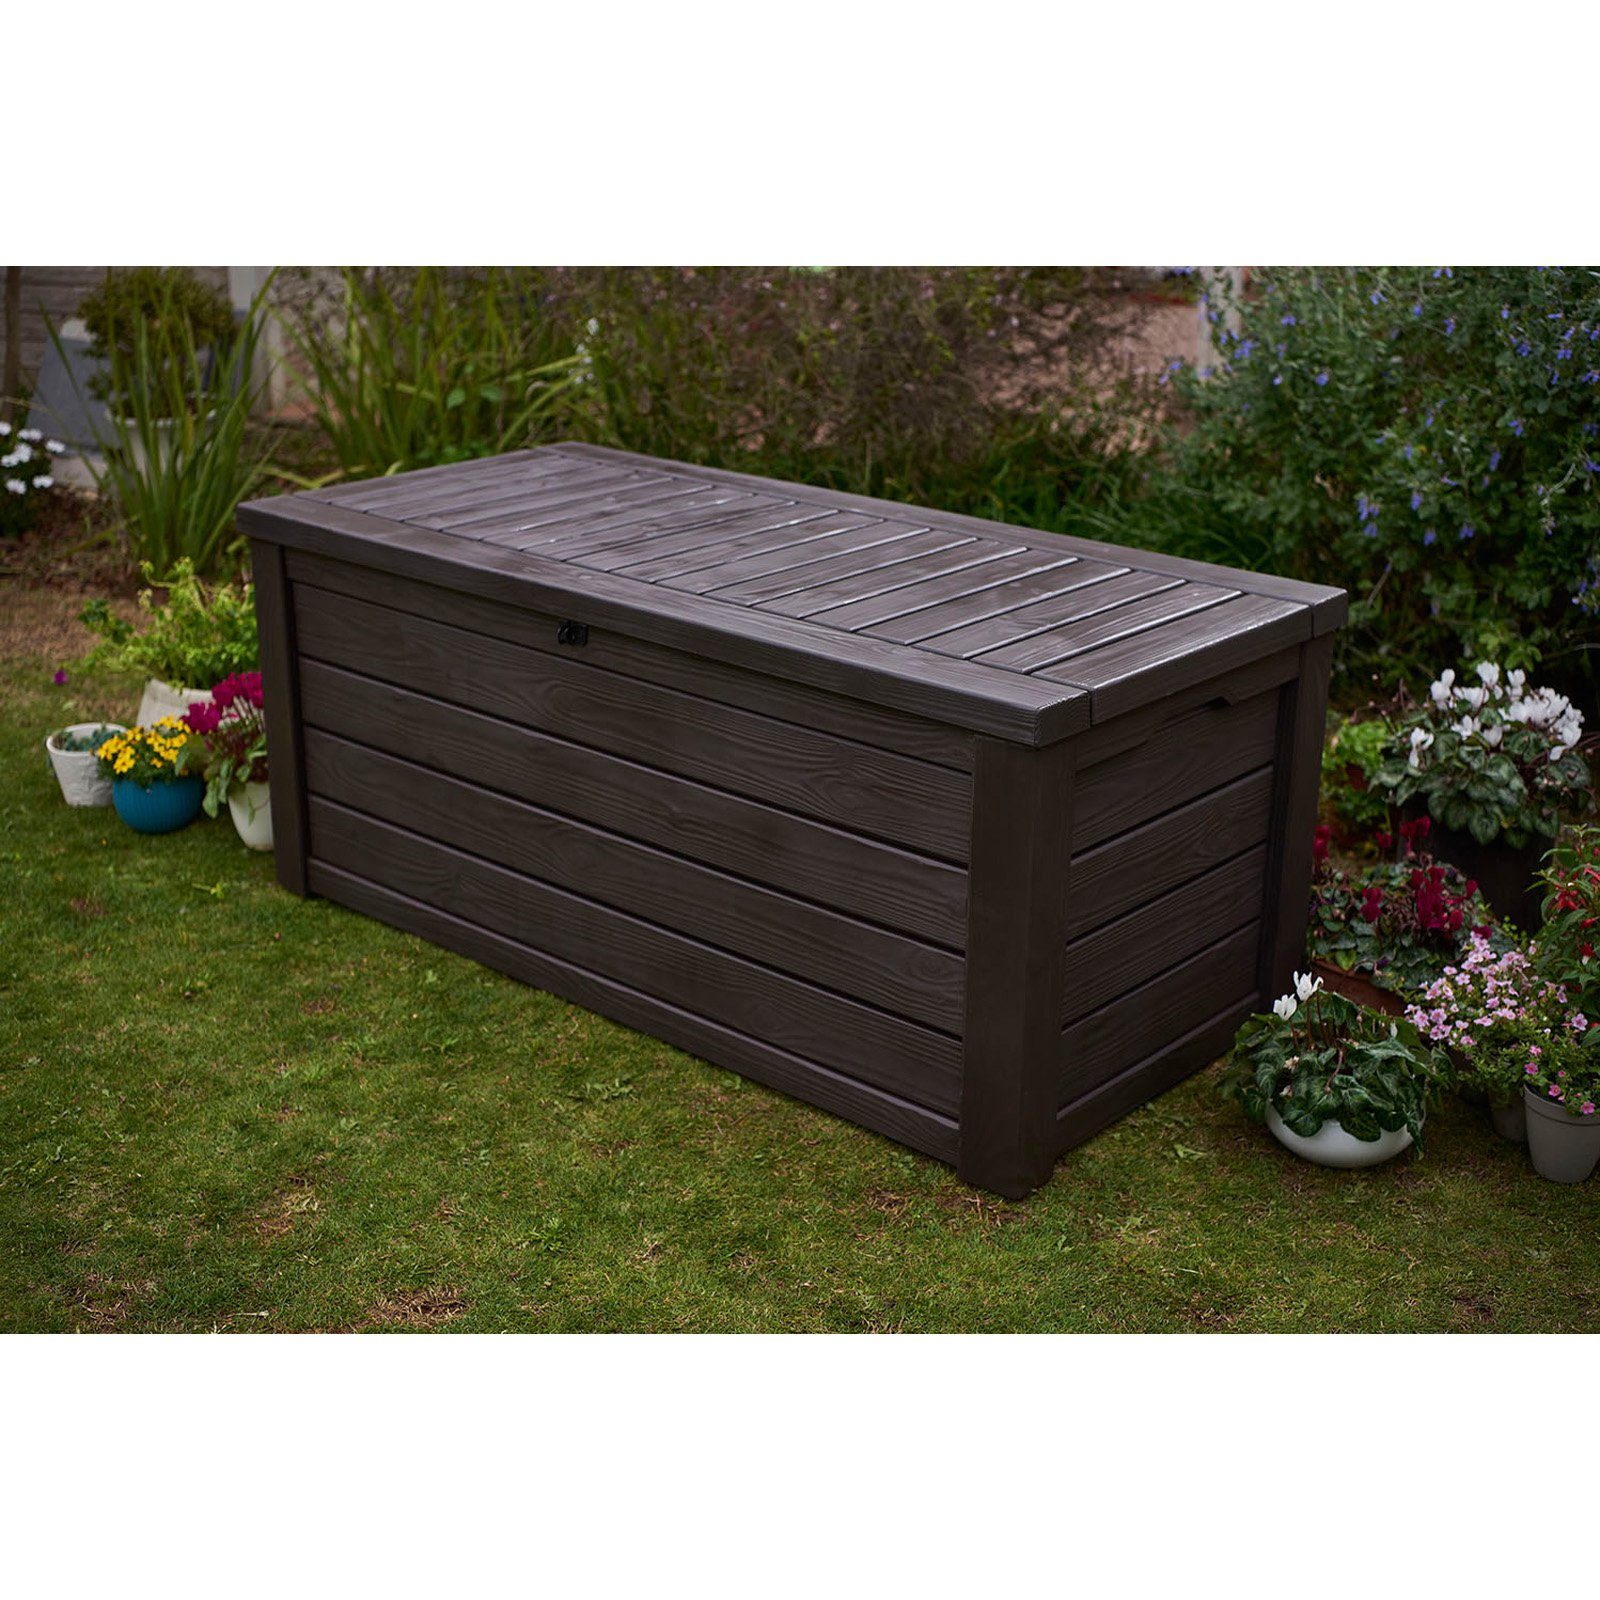 Large Deck Box for Cushions | Outdoor Deck Box Storage | Keter 150 Gallon Deck Box